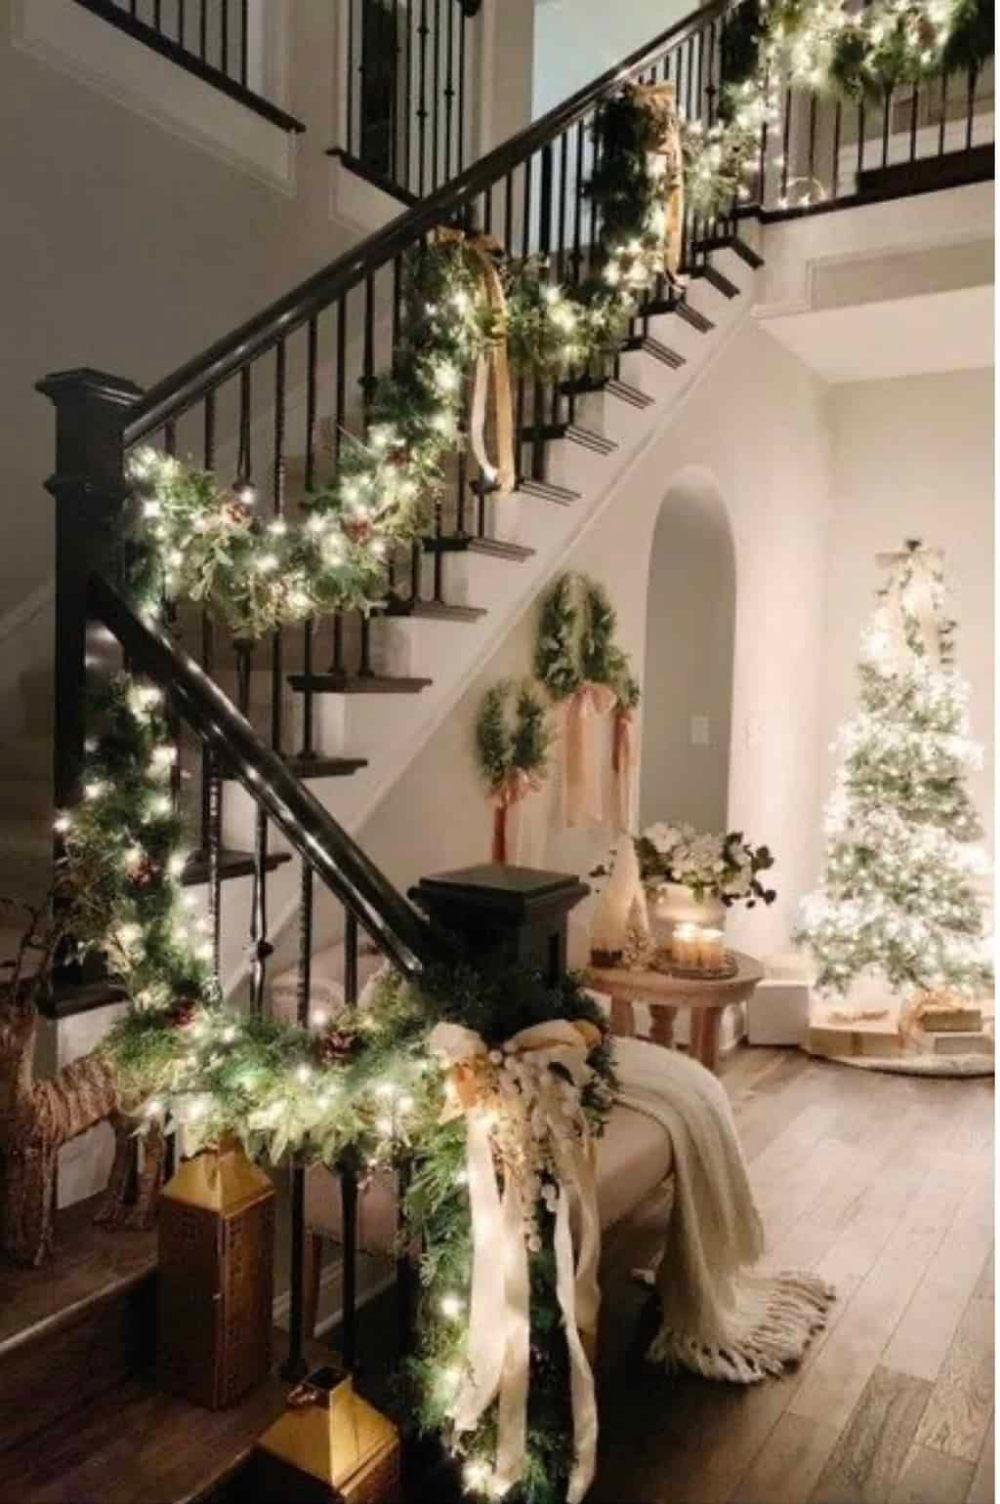 Christmas Decor We Are Drooling Over in 2020 -   19 christmas decor wreaths & garlands ideas